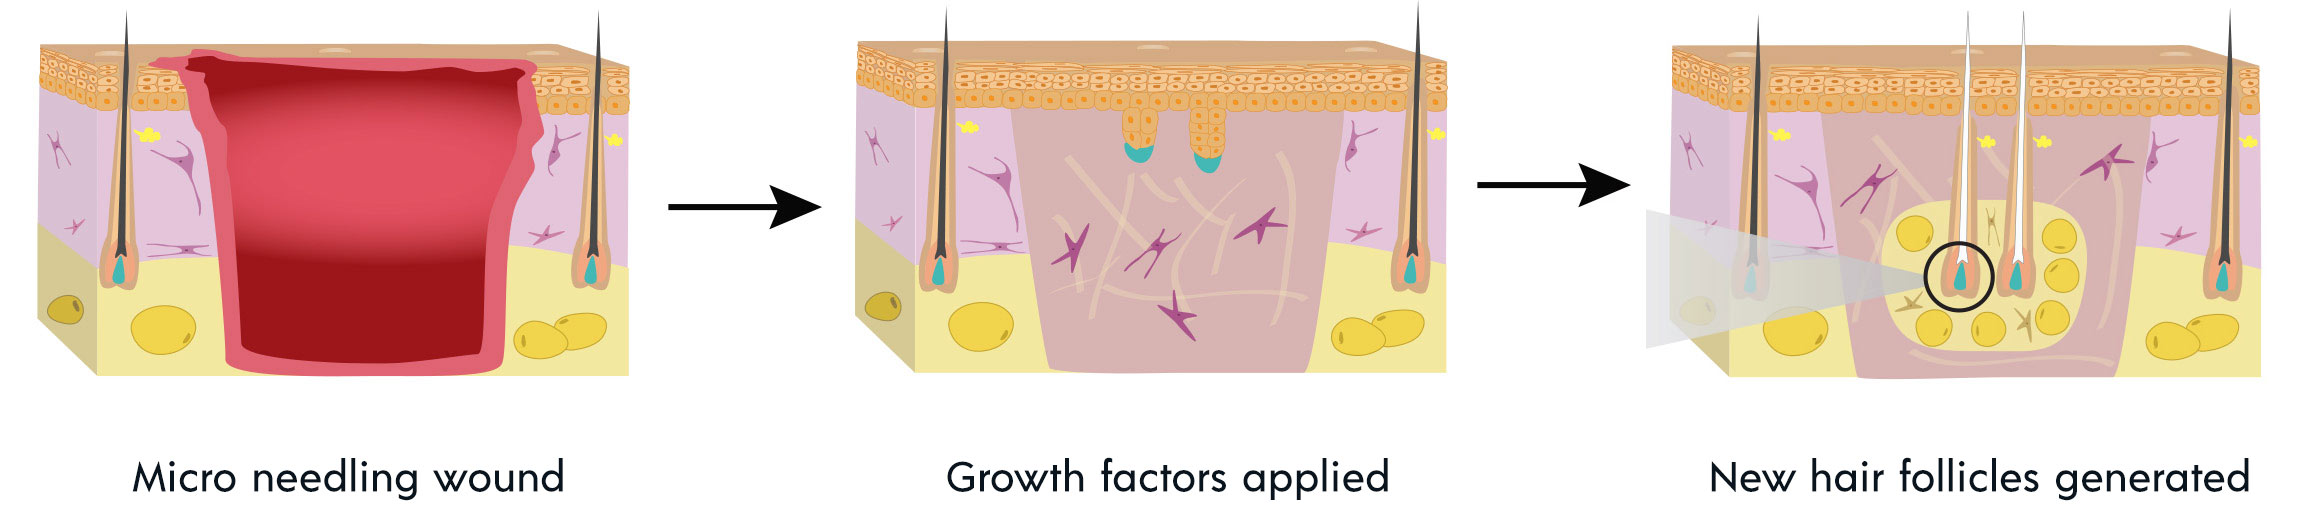 Wound induced hair follicle neogenesis